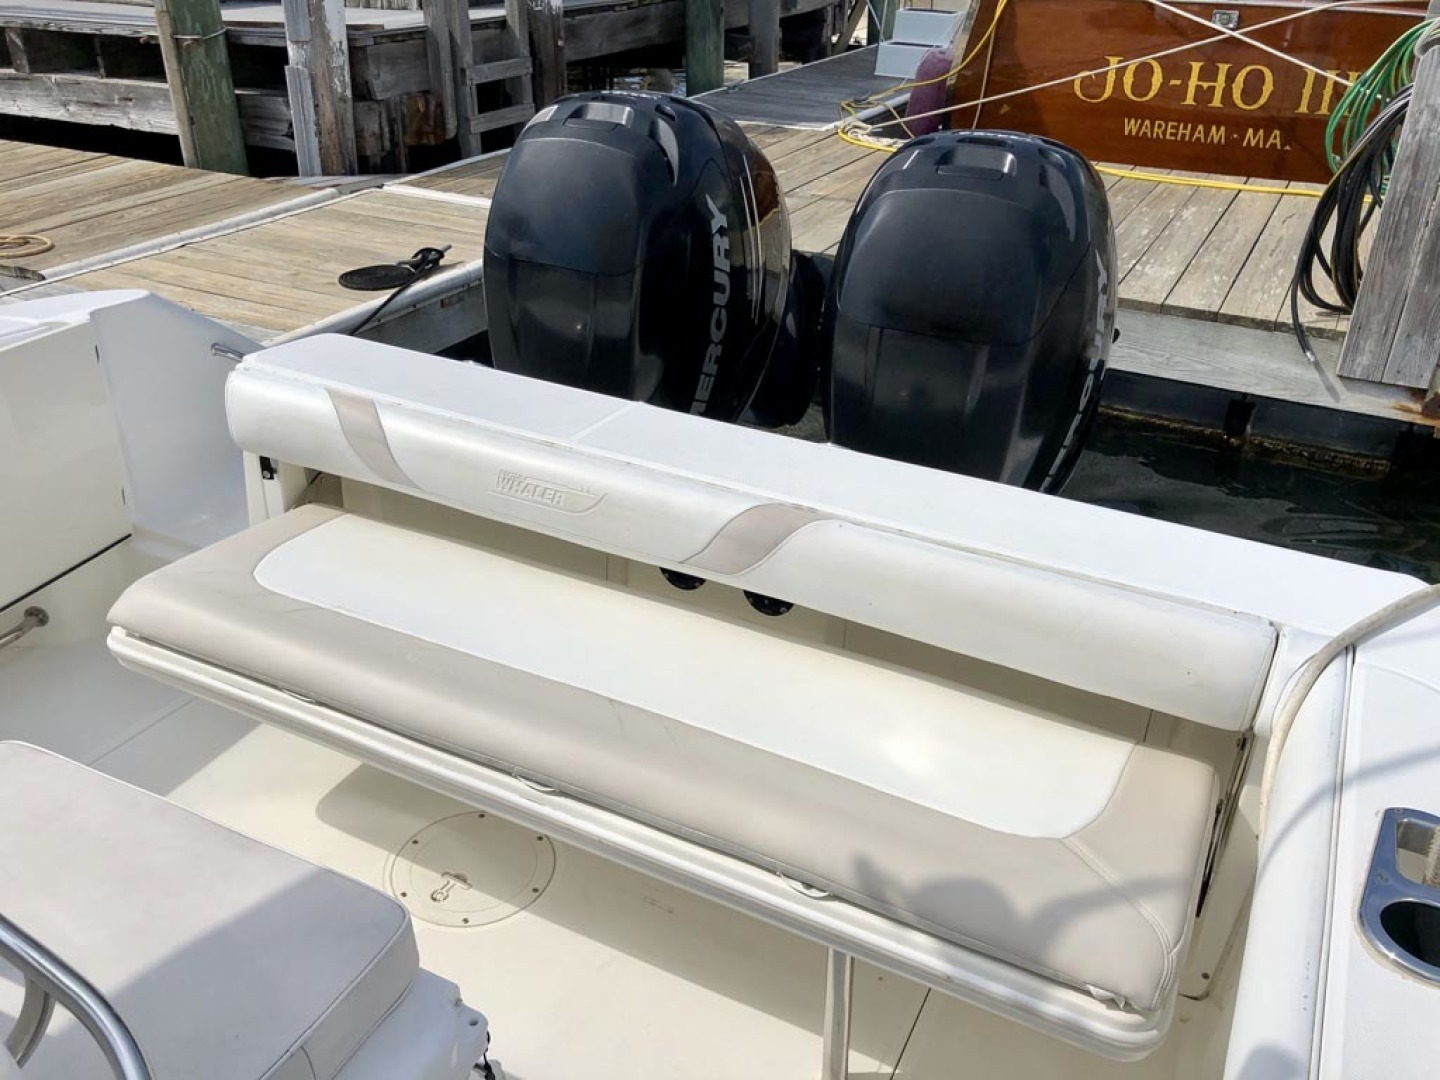 Boston Whaler-320 Outrage Cuddy Cabin 2008 -Onset-Massachusetts-United States-Fold Down Aft Bench Seat-1447538 | Thumbnail